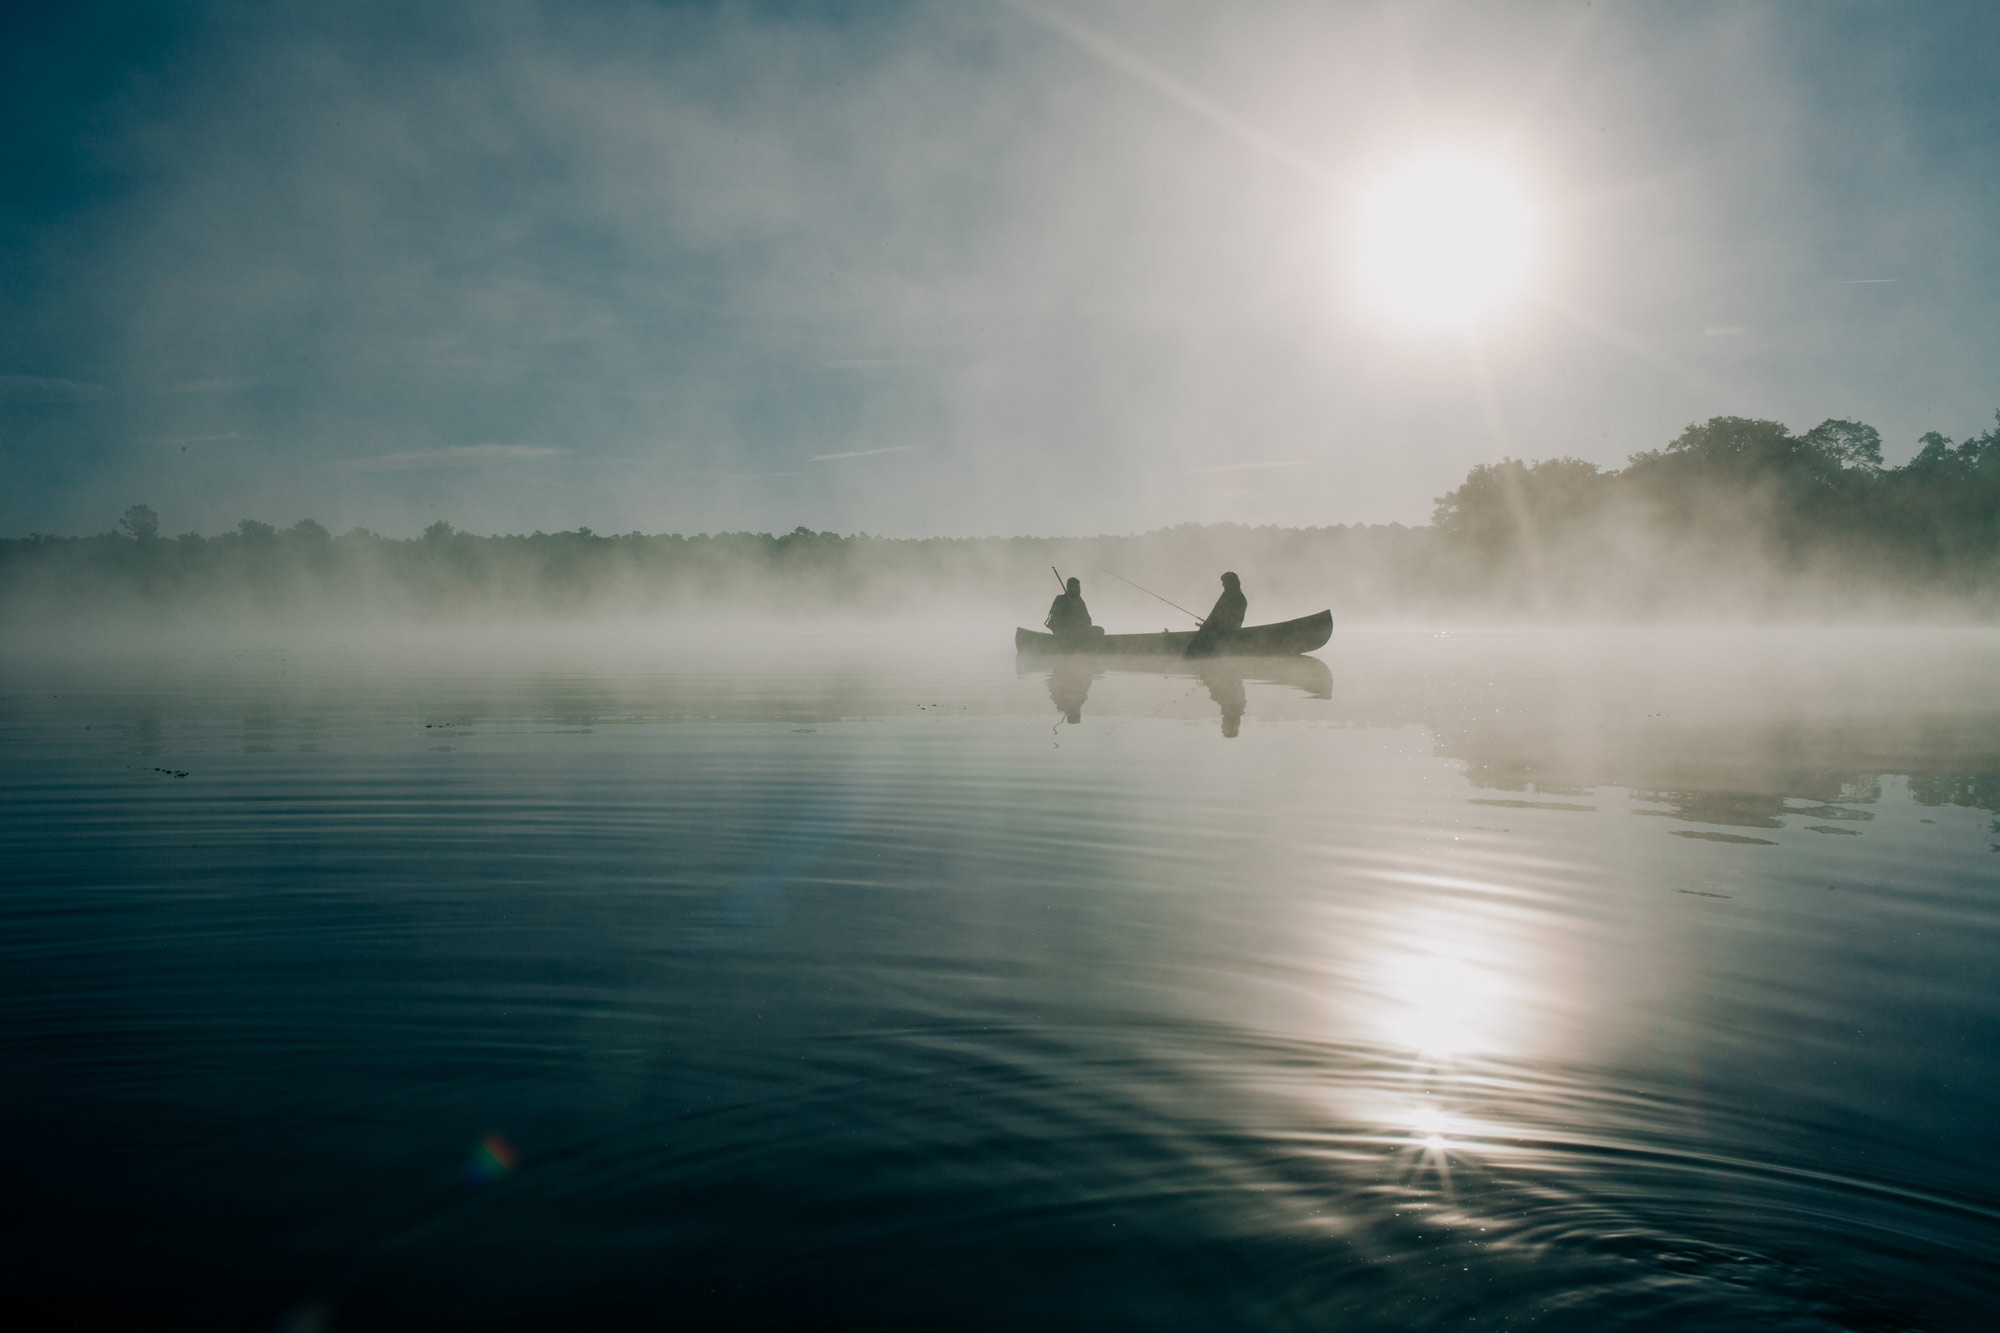 Two people in canoe on lake - via Unsplash Ravi Pinisetti